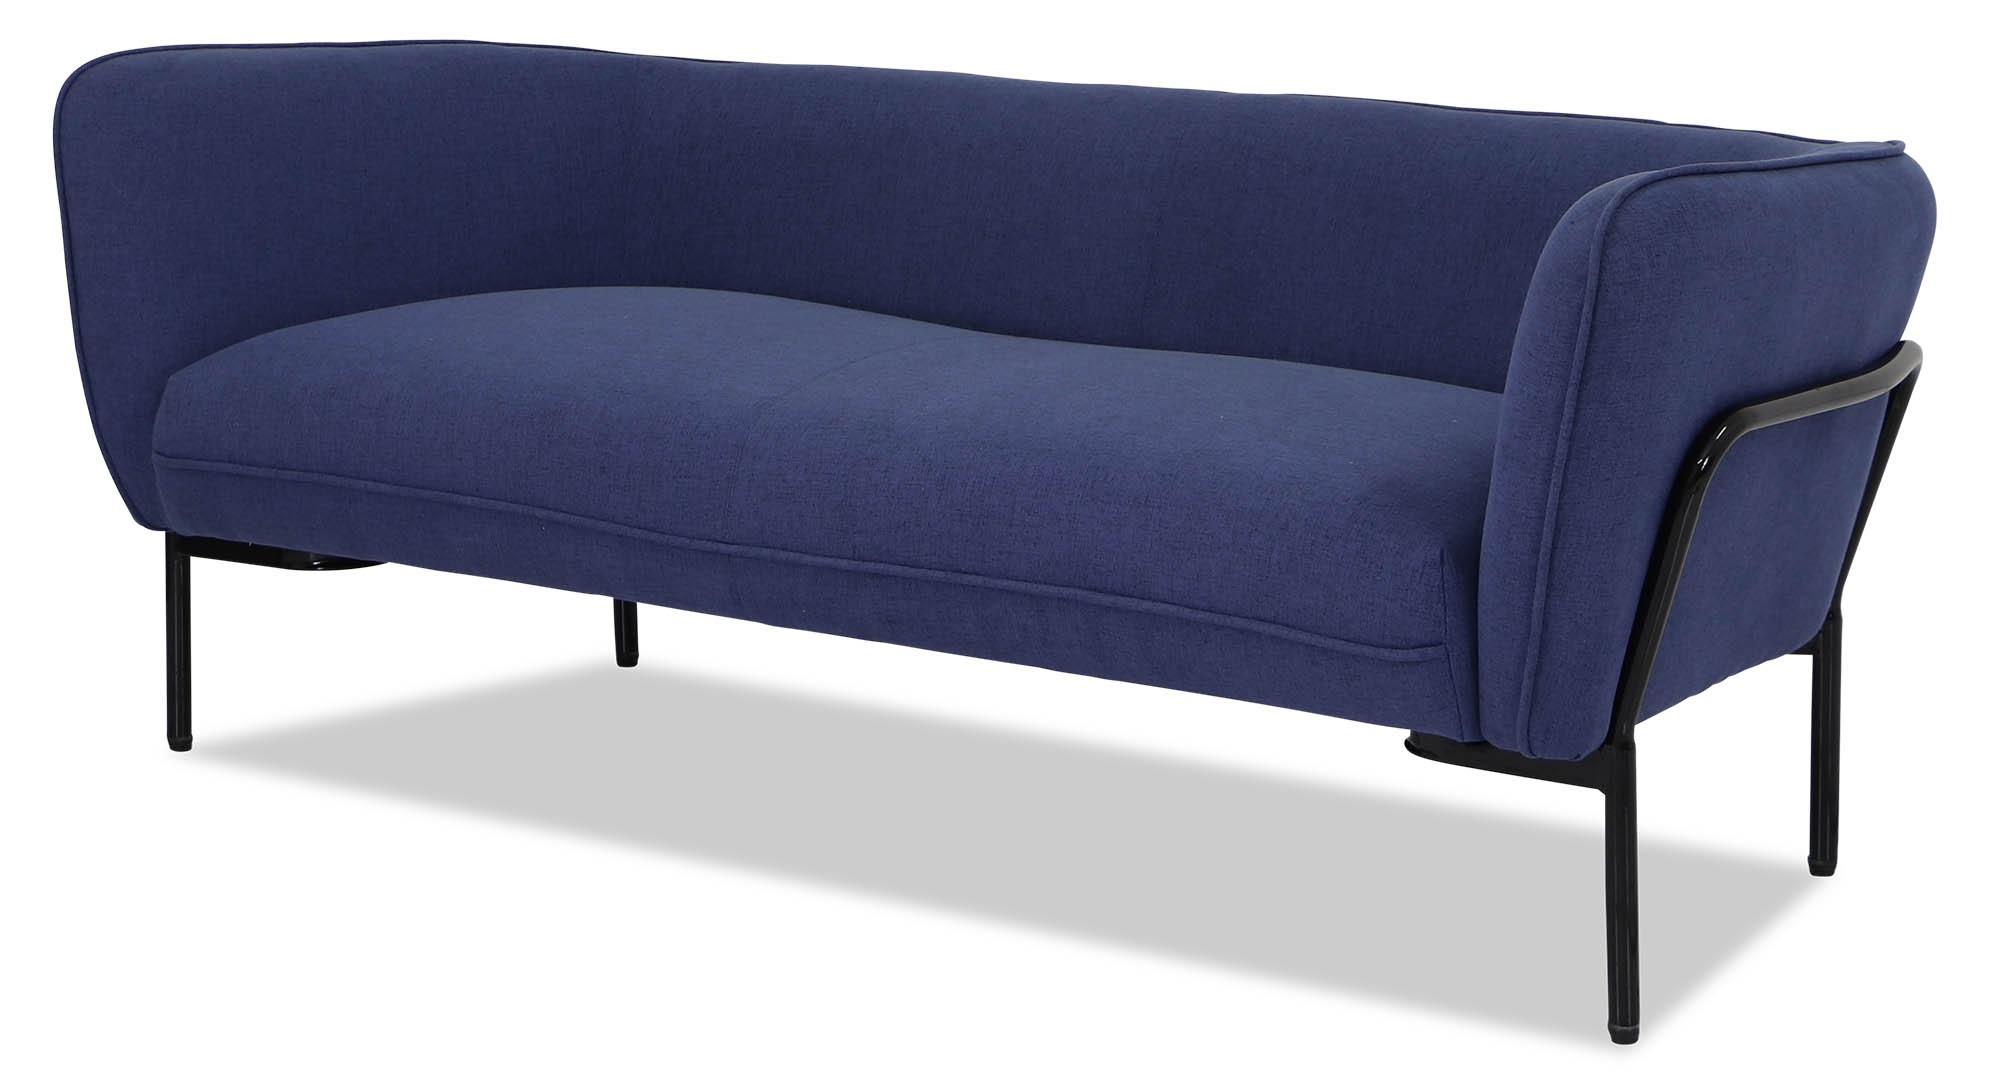 Karen Sofa In Ink Blue With Black Iron Stand | Furniture & Home Within Karen Sofa Chairs (Image 15 of 20)